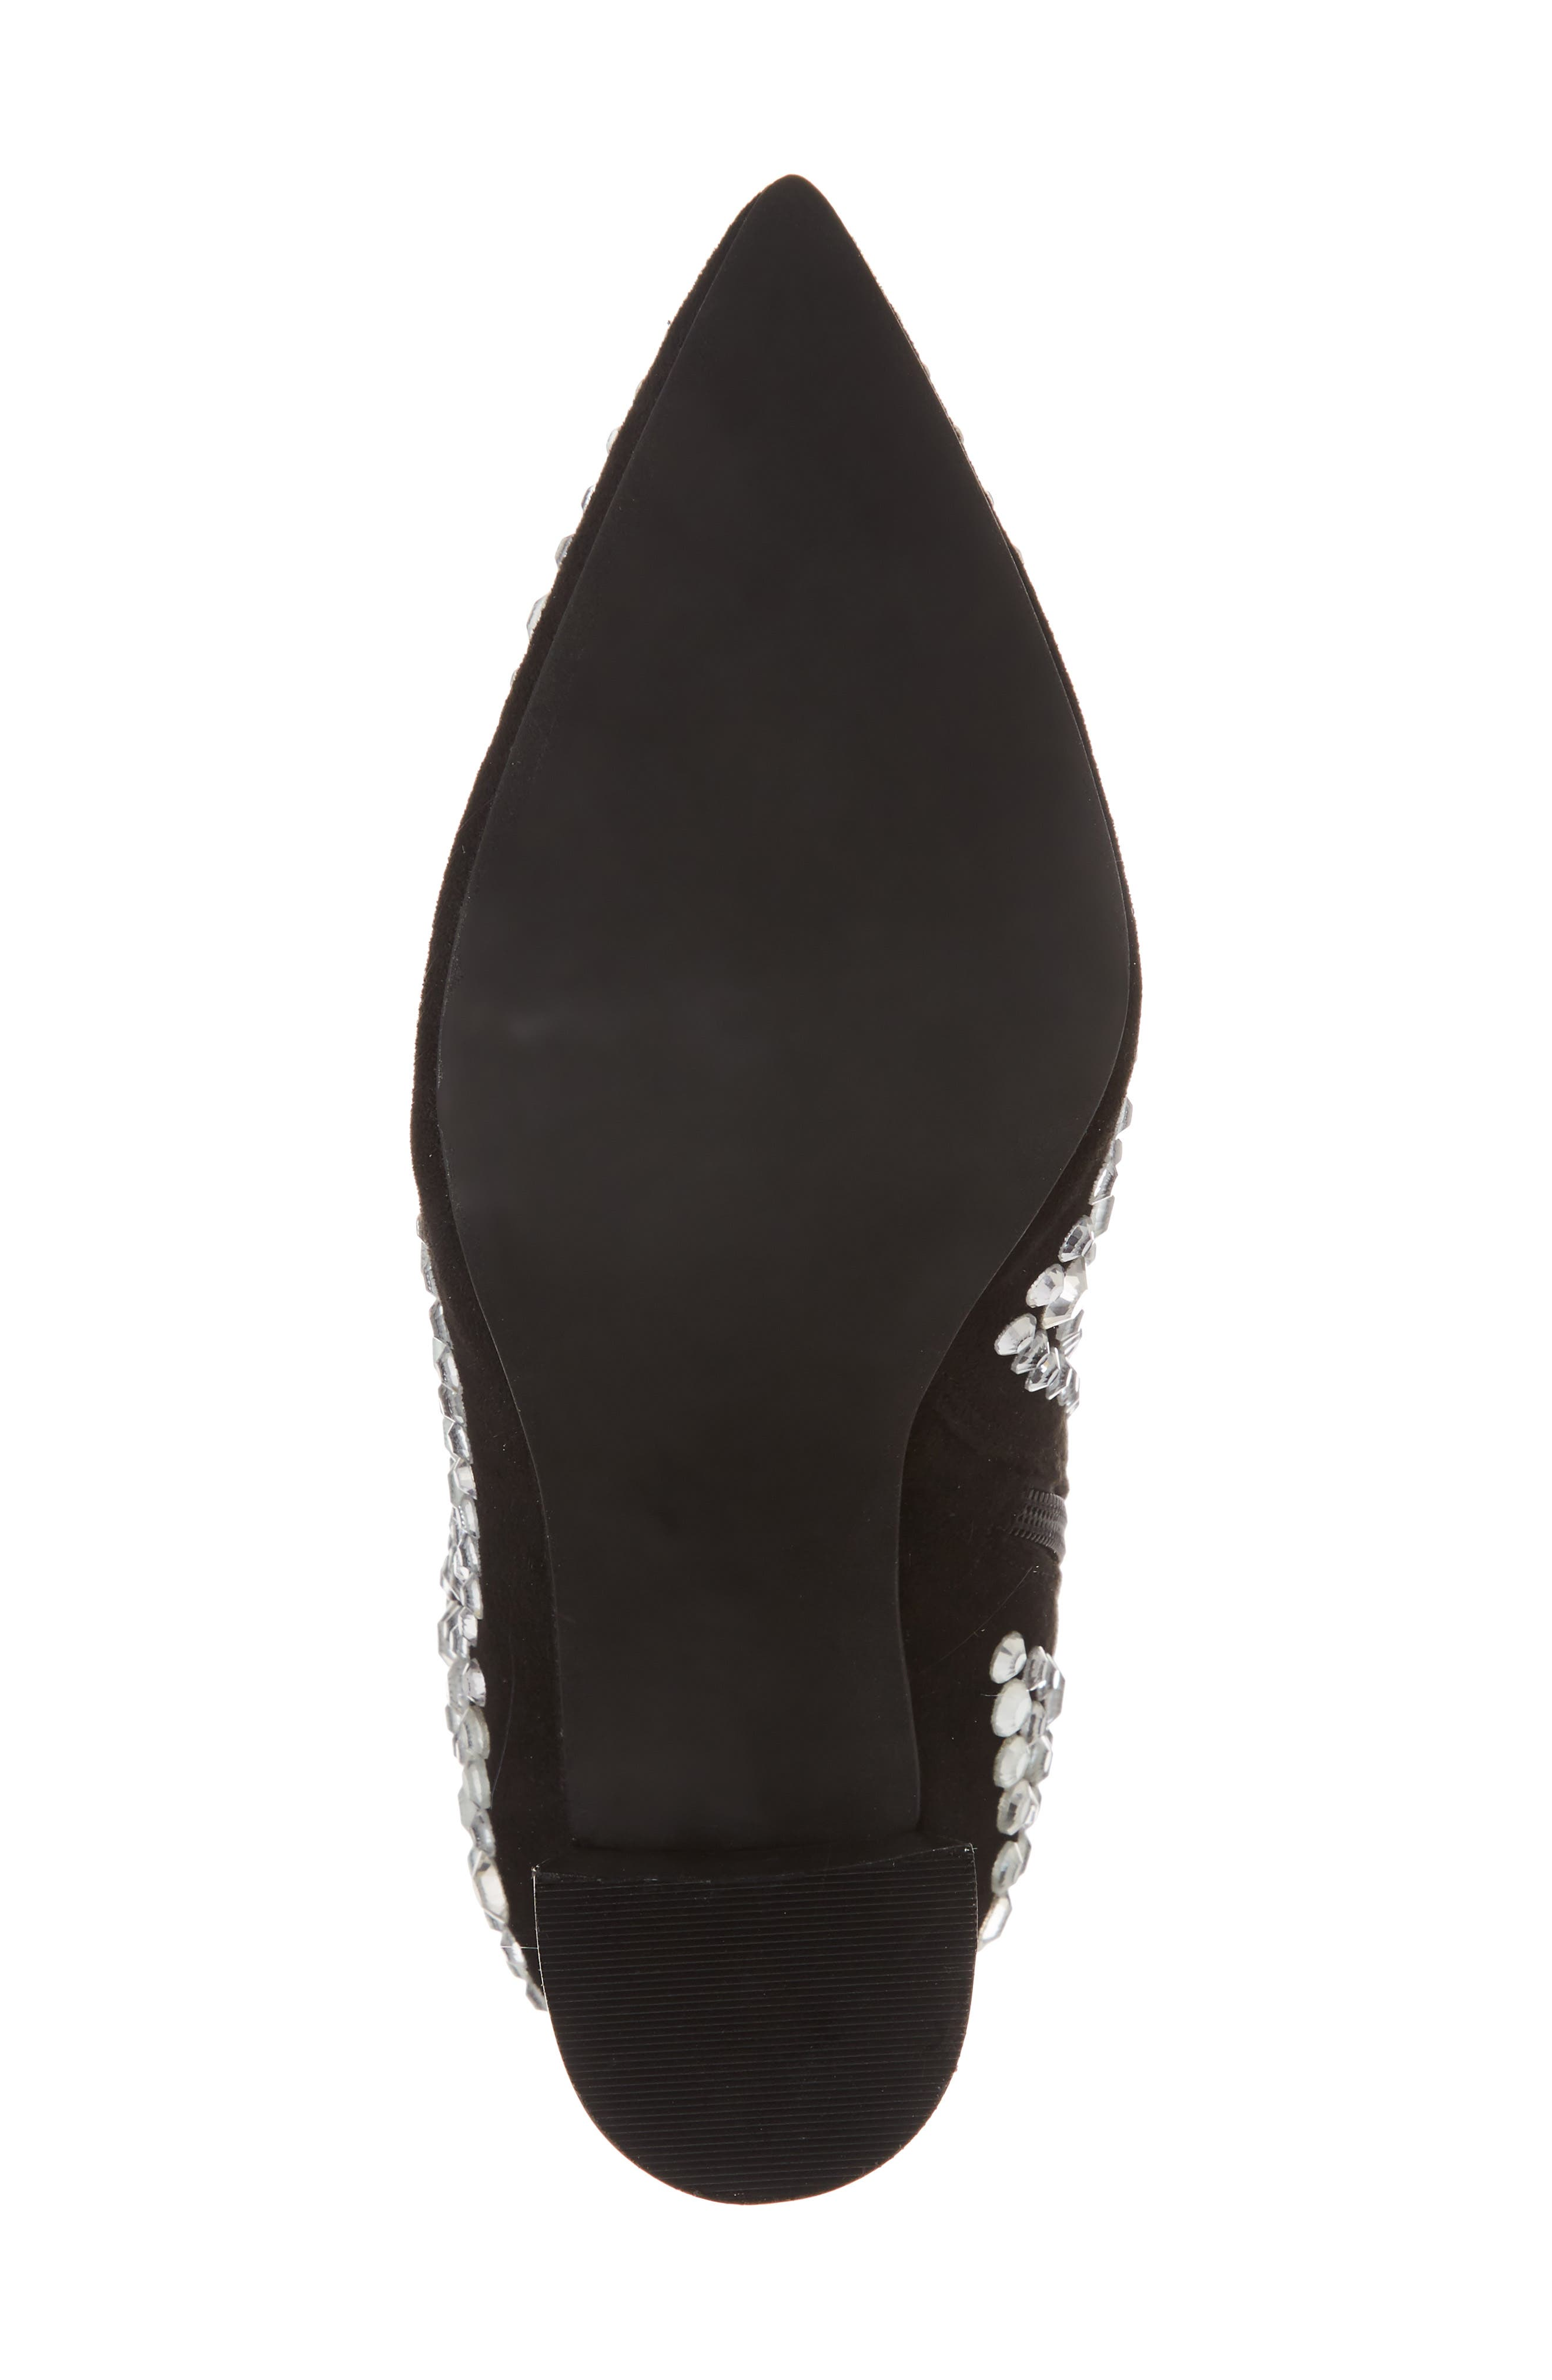 Siren-J Bootie,                             Alternate thumbnail 6, color,                             Black Faux Suede